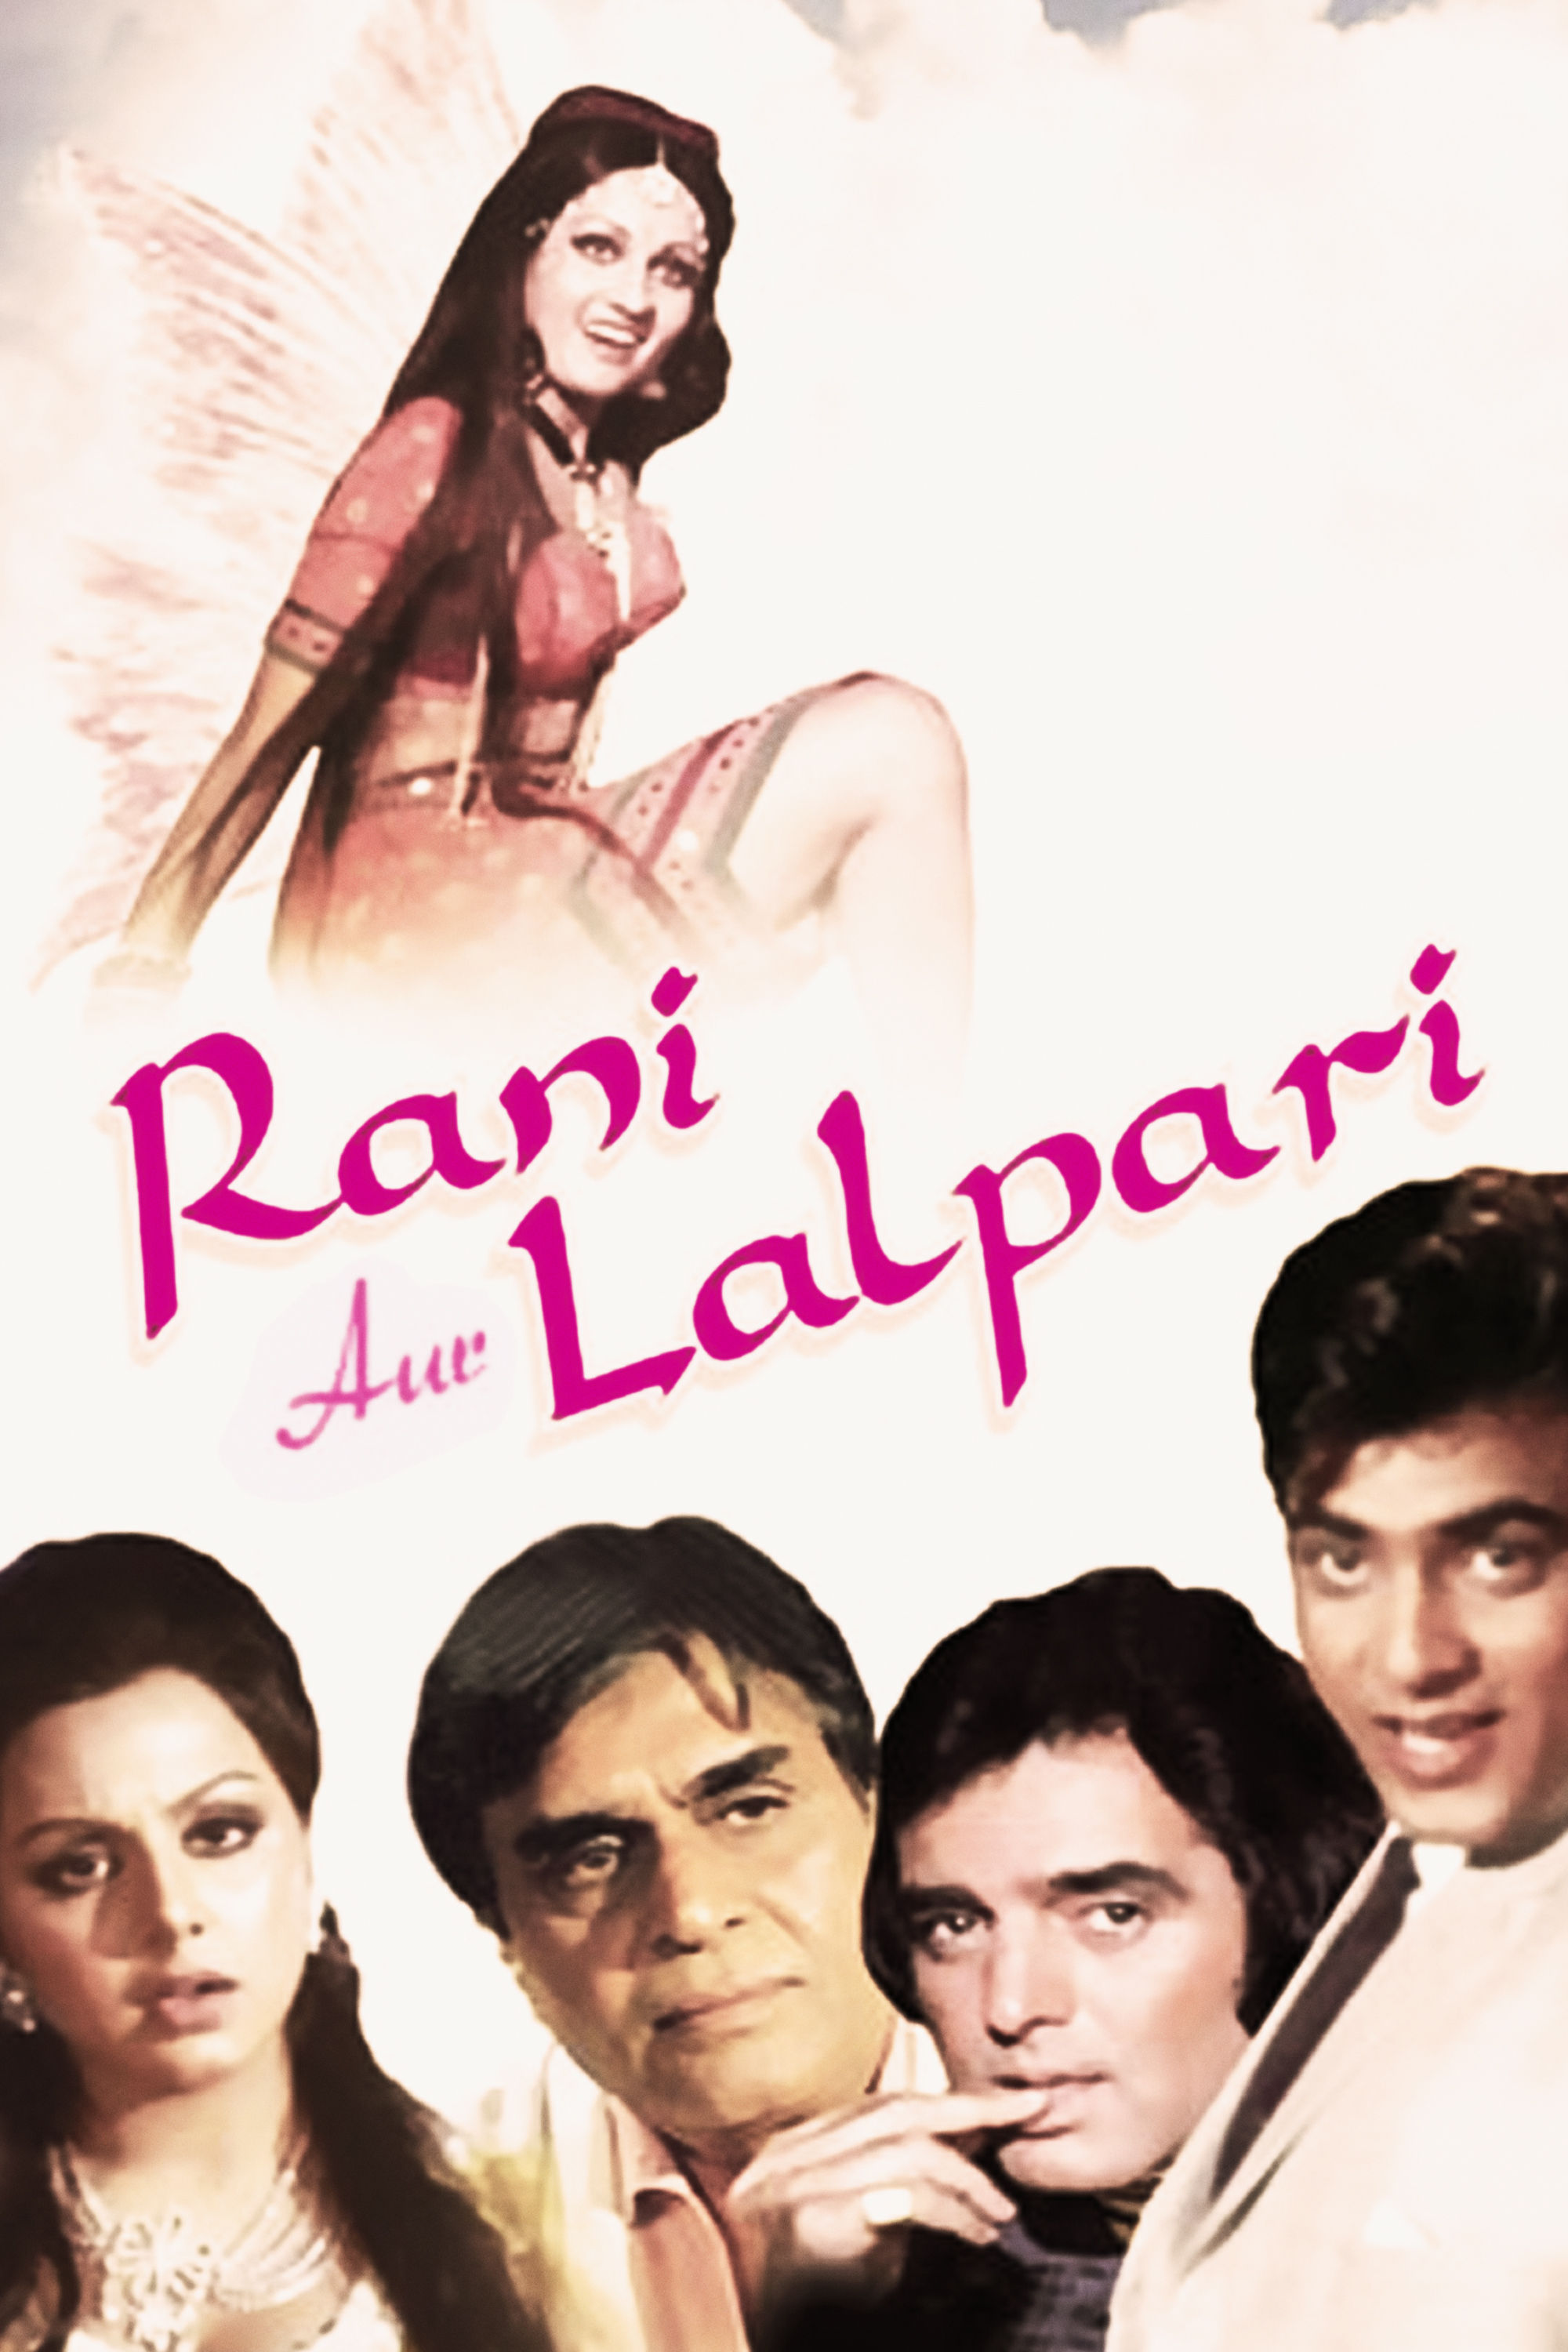 Baby Rani Best Movies, TV Shows and Web Series List